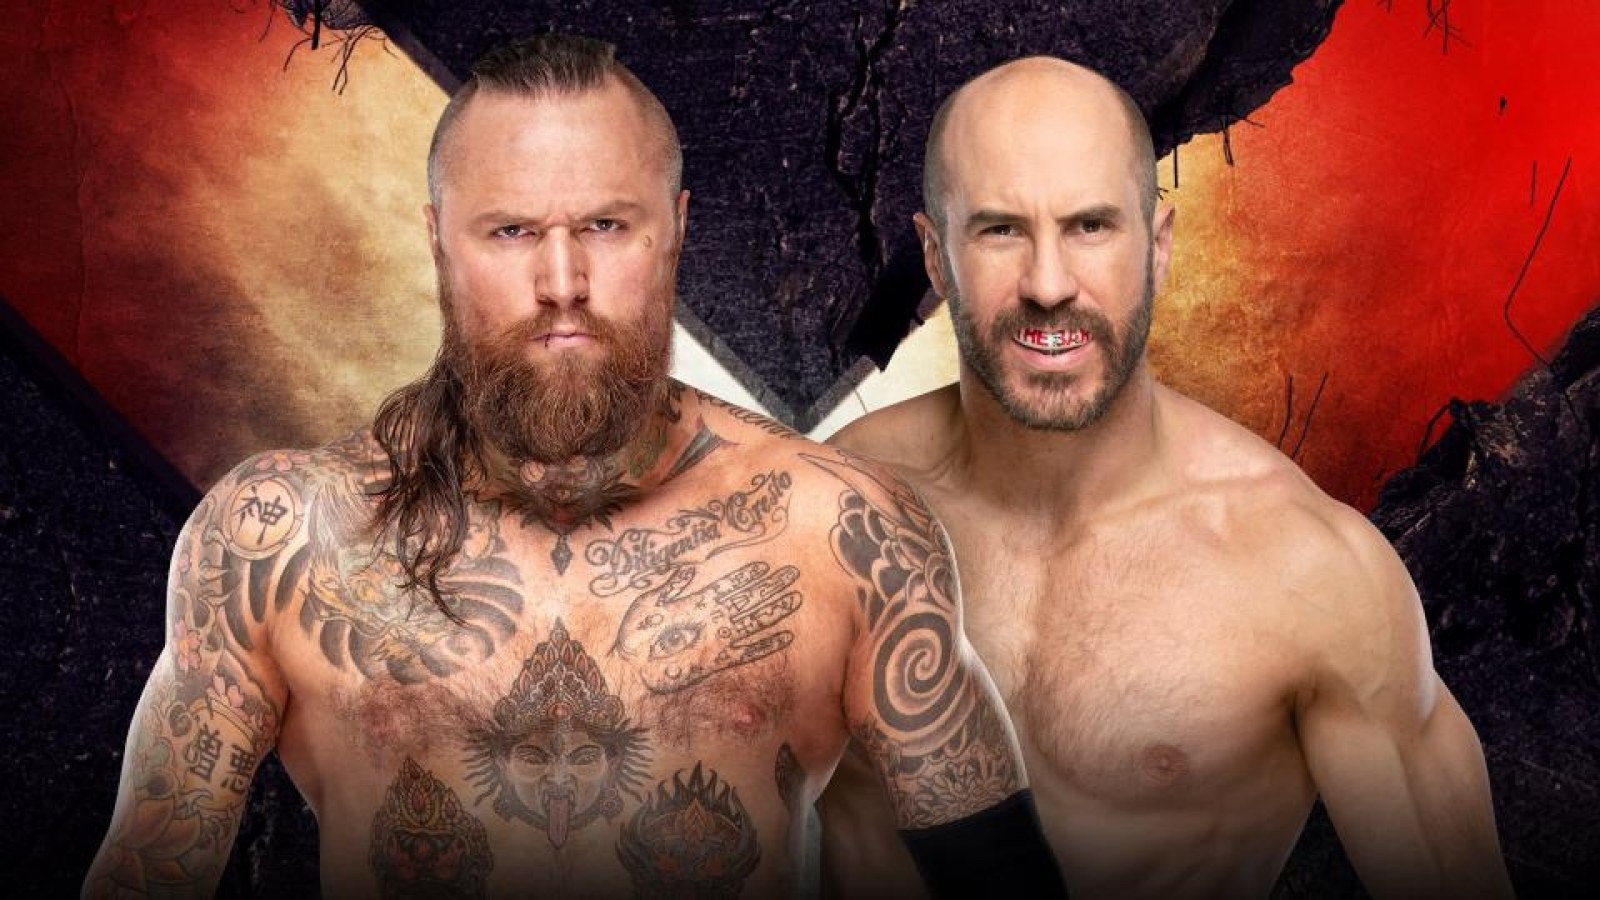 WWE Extreme Rules 2019 Predictions: Who Wins on Sunday